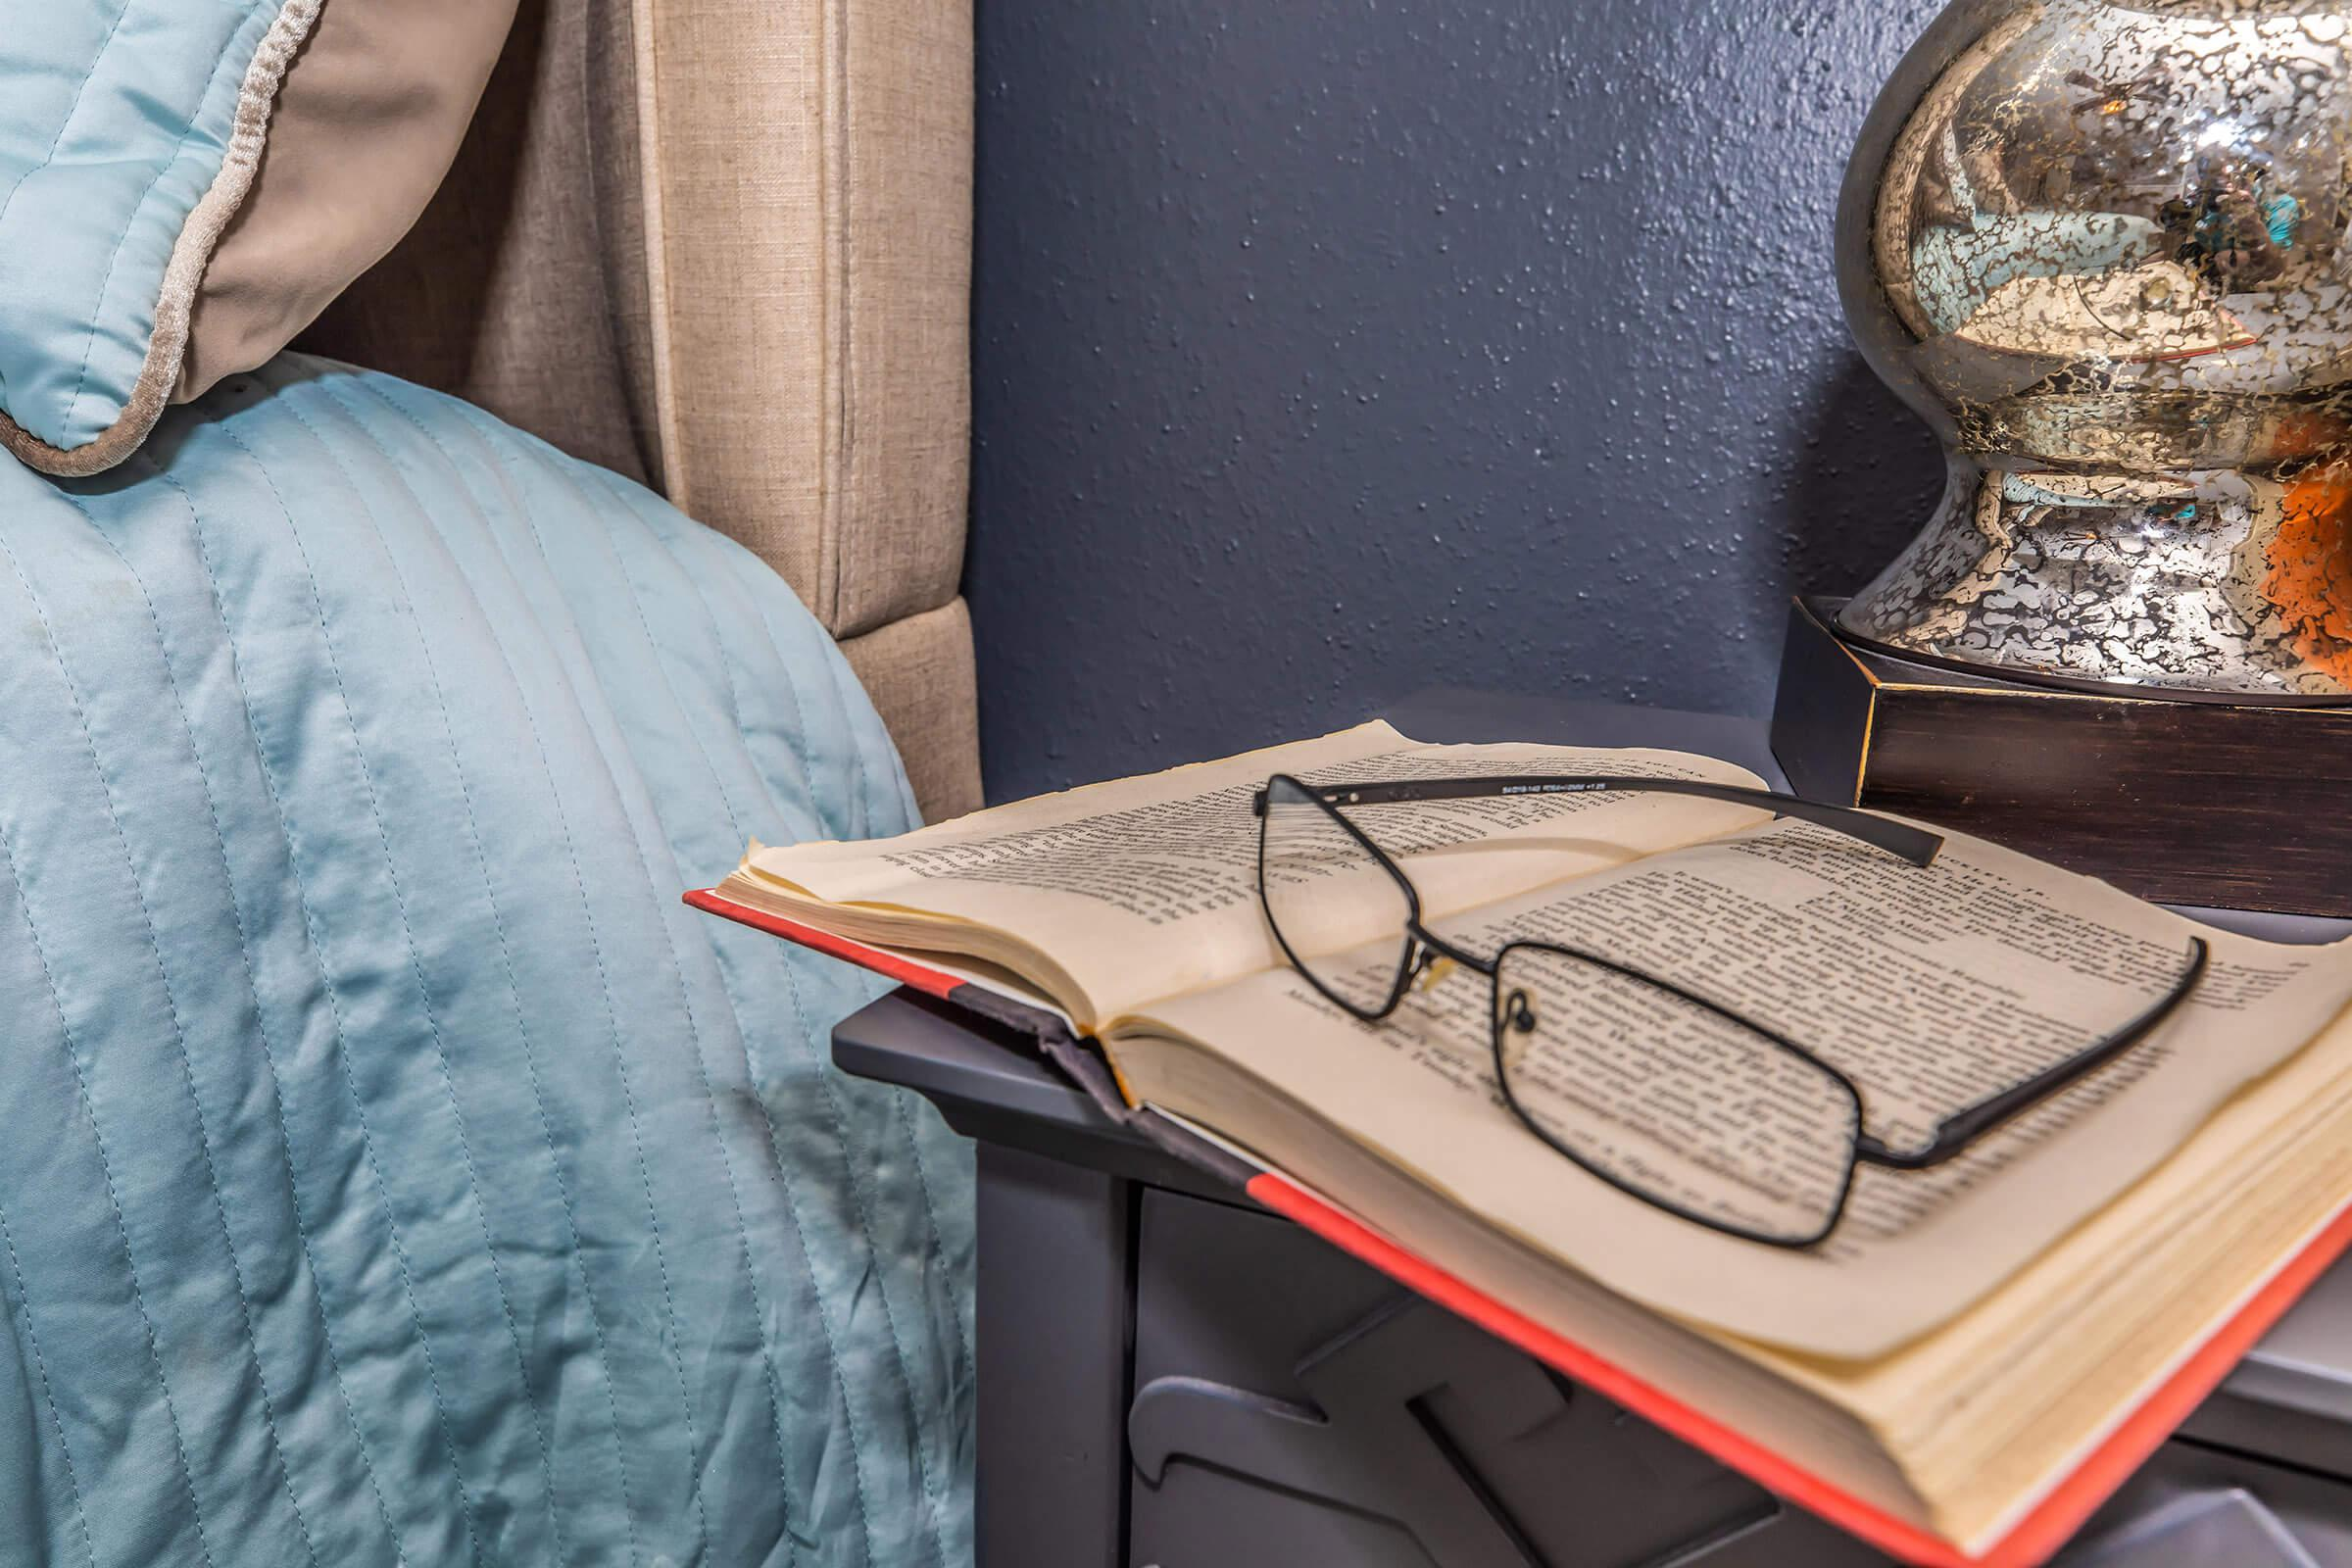 a laptop on a bed